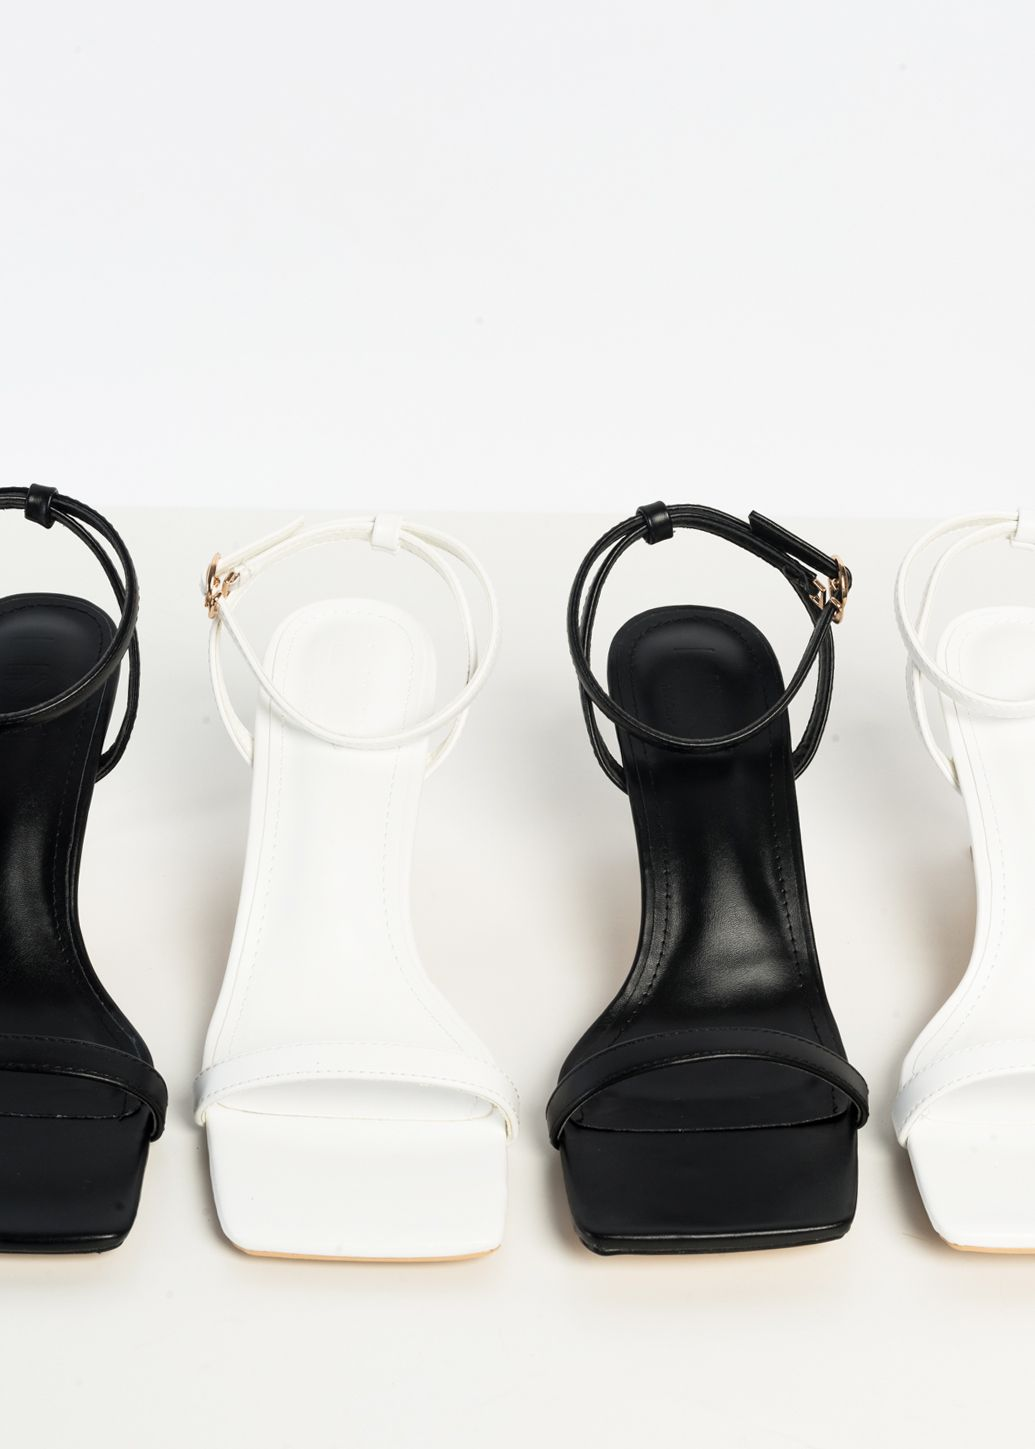 HIGH-HEEL SANDALS WITH SQUARE TOES